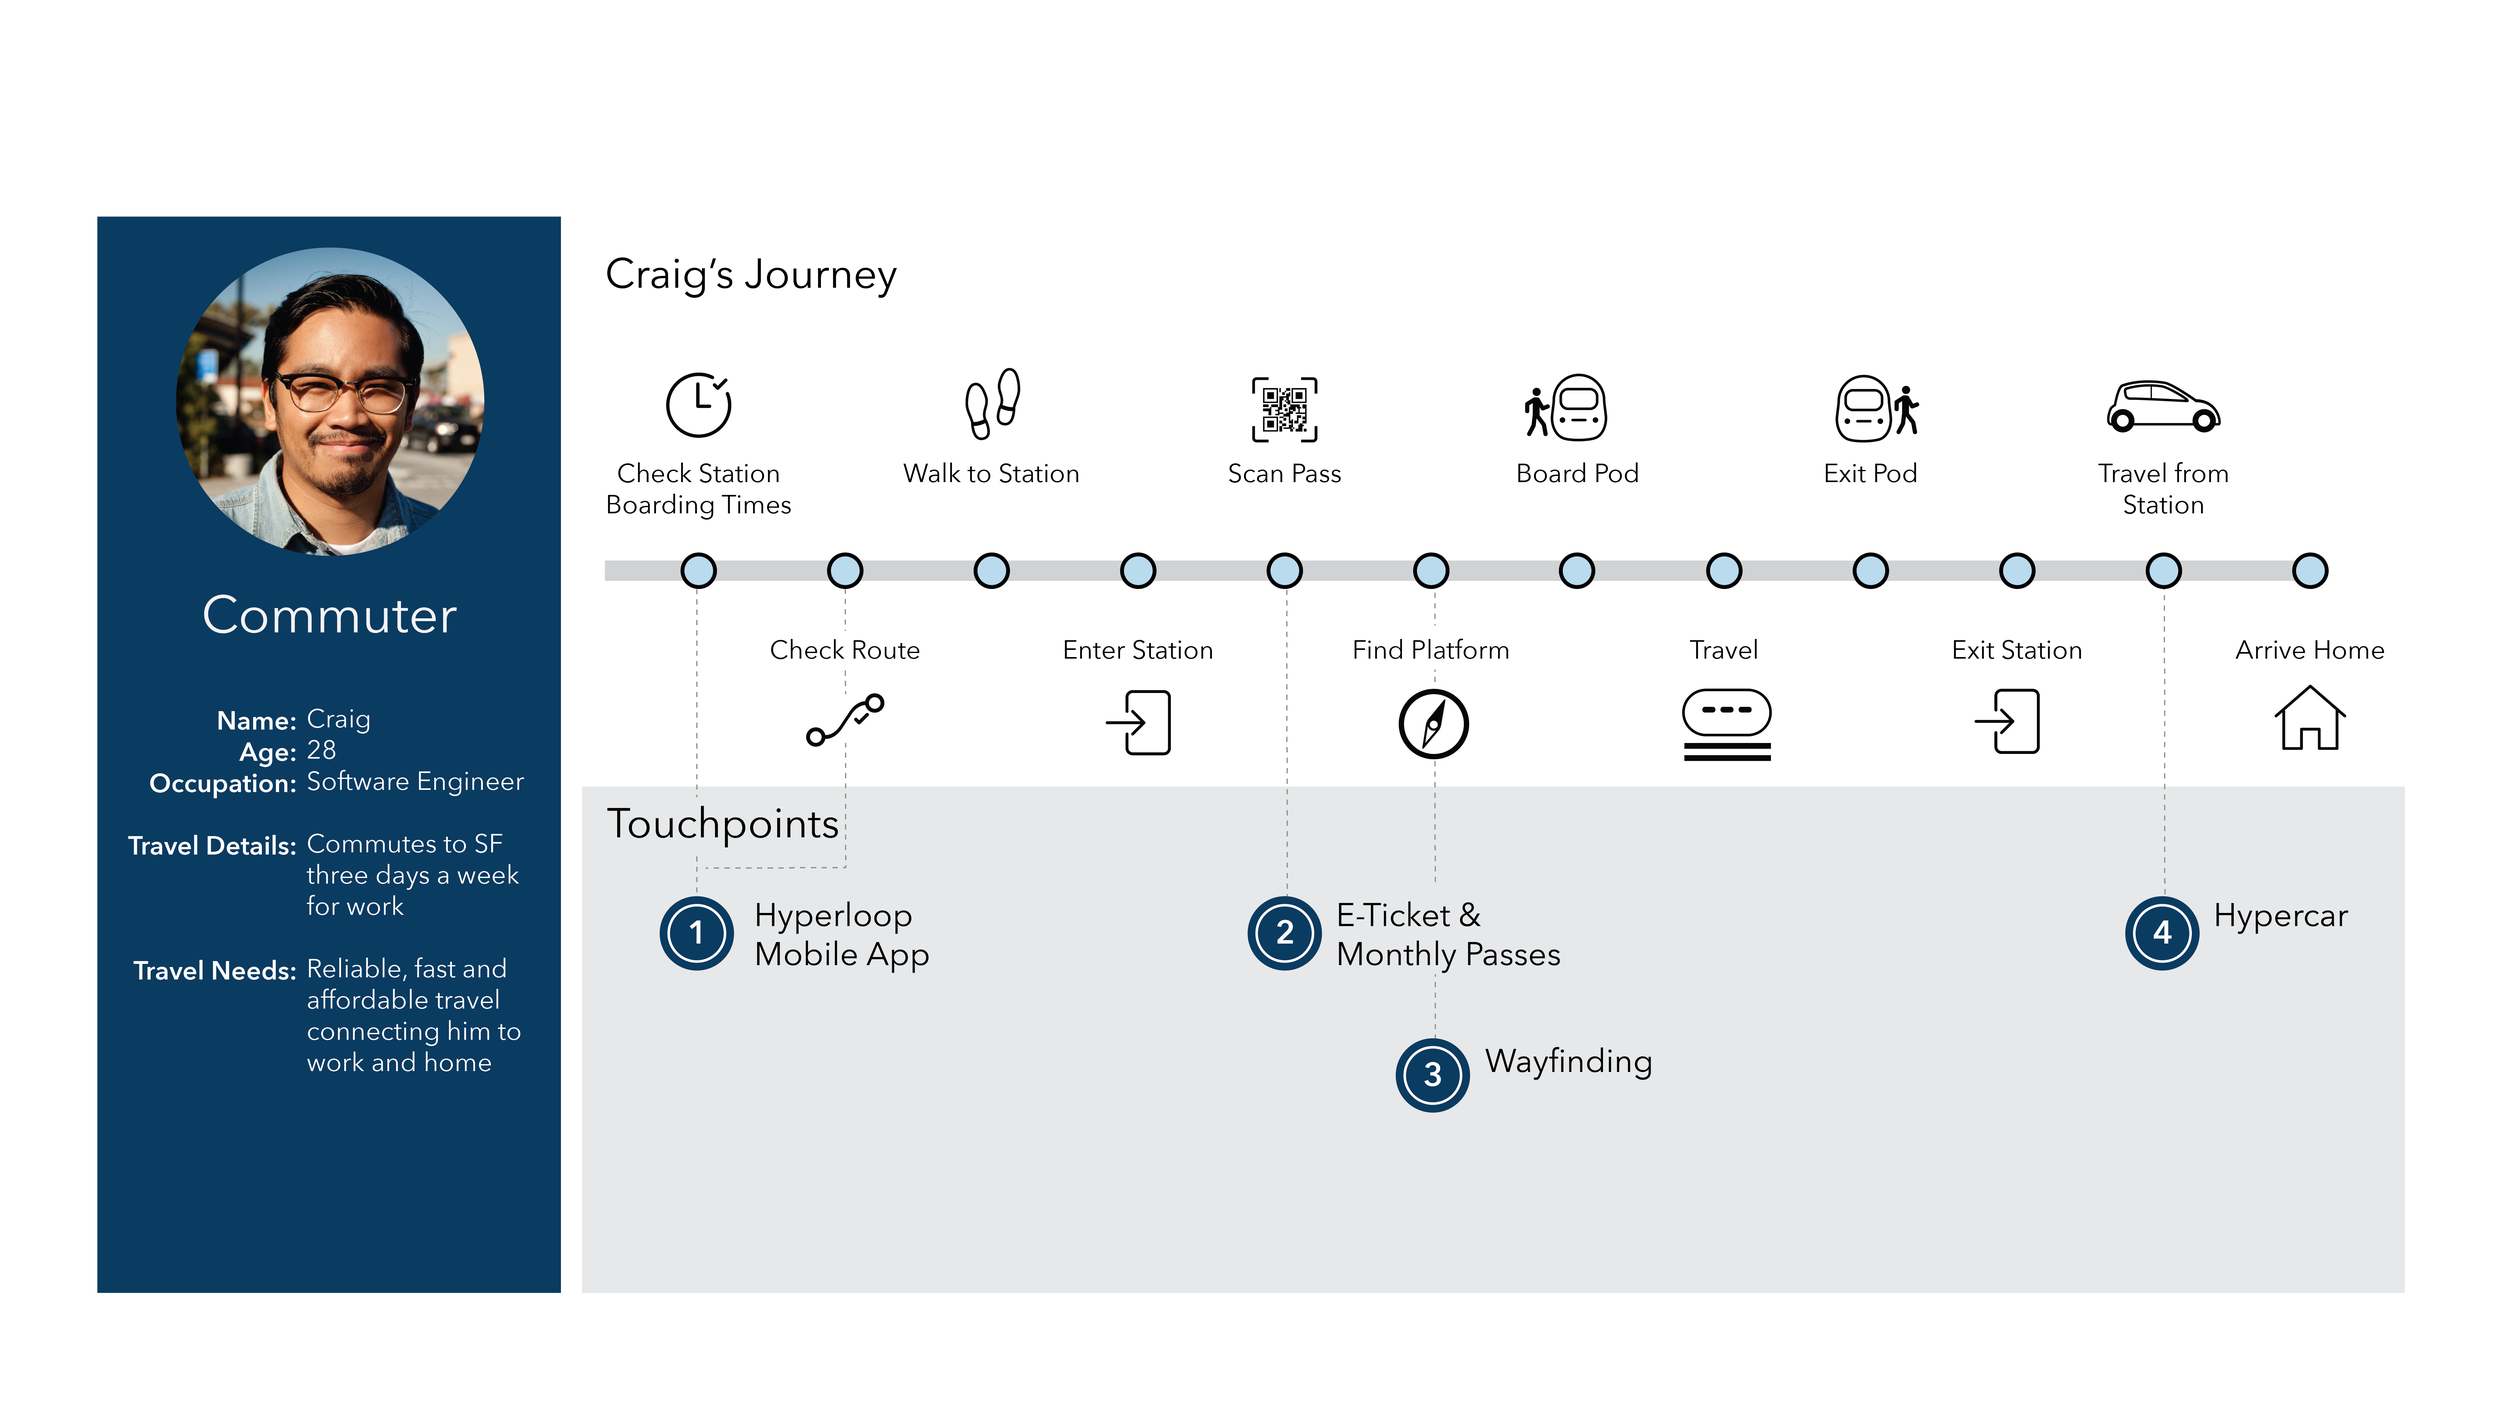 USER JOURNEY MAP:  This helped us to map our many touch points back to user types, and guided us in tailoring the design of different experiences and service offerings to each audience and their needs.